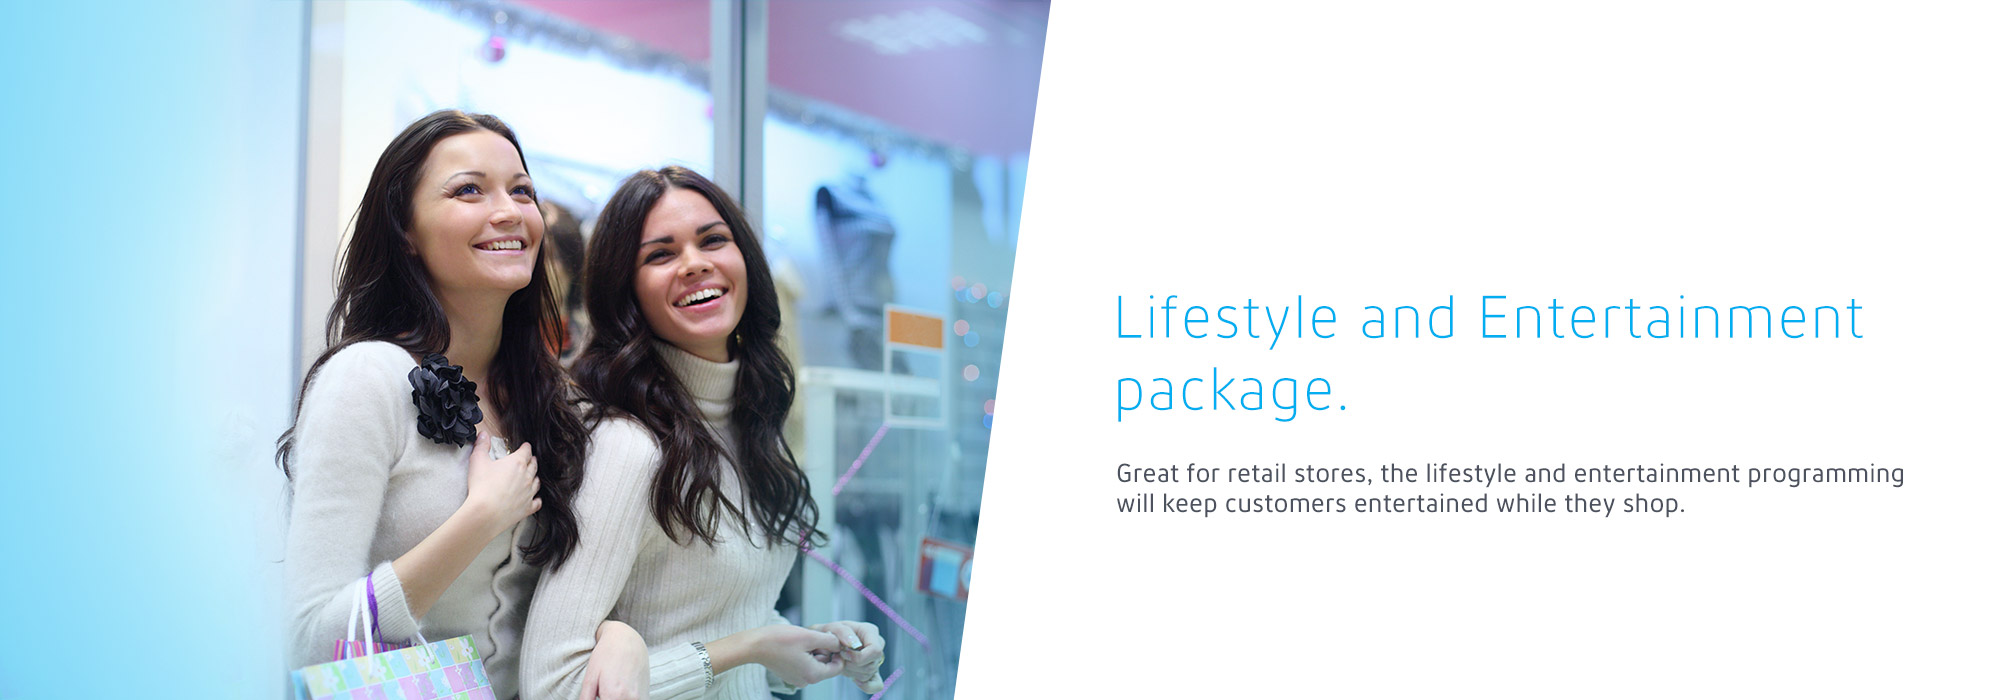 Lifestyle and Entertainment package: Great for retail stores, the lifestyle and entertainment programming will keep customers entertained while they shop.